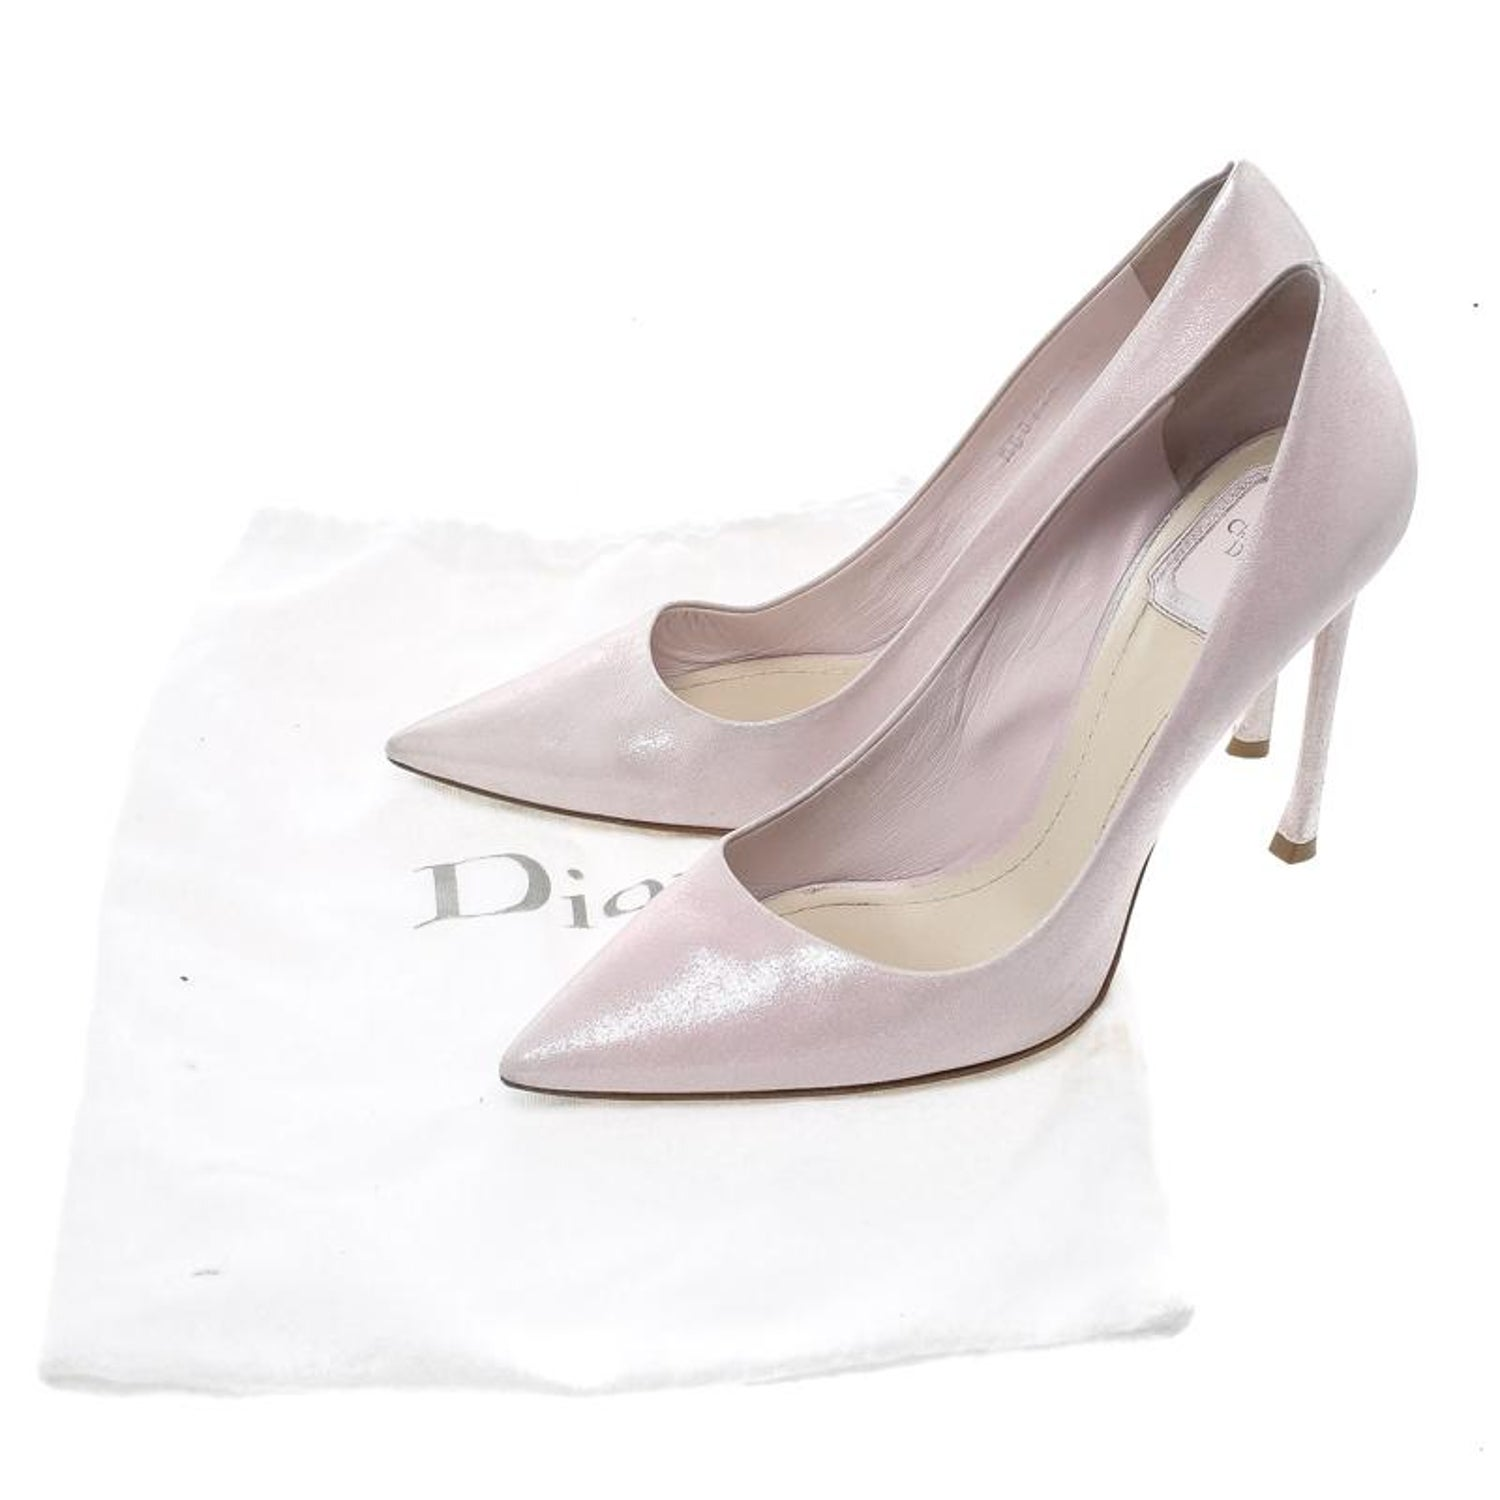 0cfaea6f1 Dior Blush Pink Shimmering Suede Pointed Toe Pumps Size 38.5 at 1stdibs